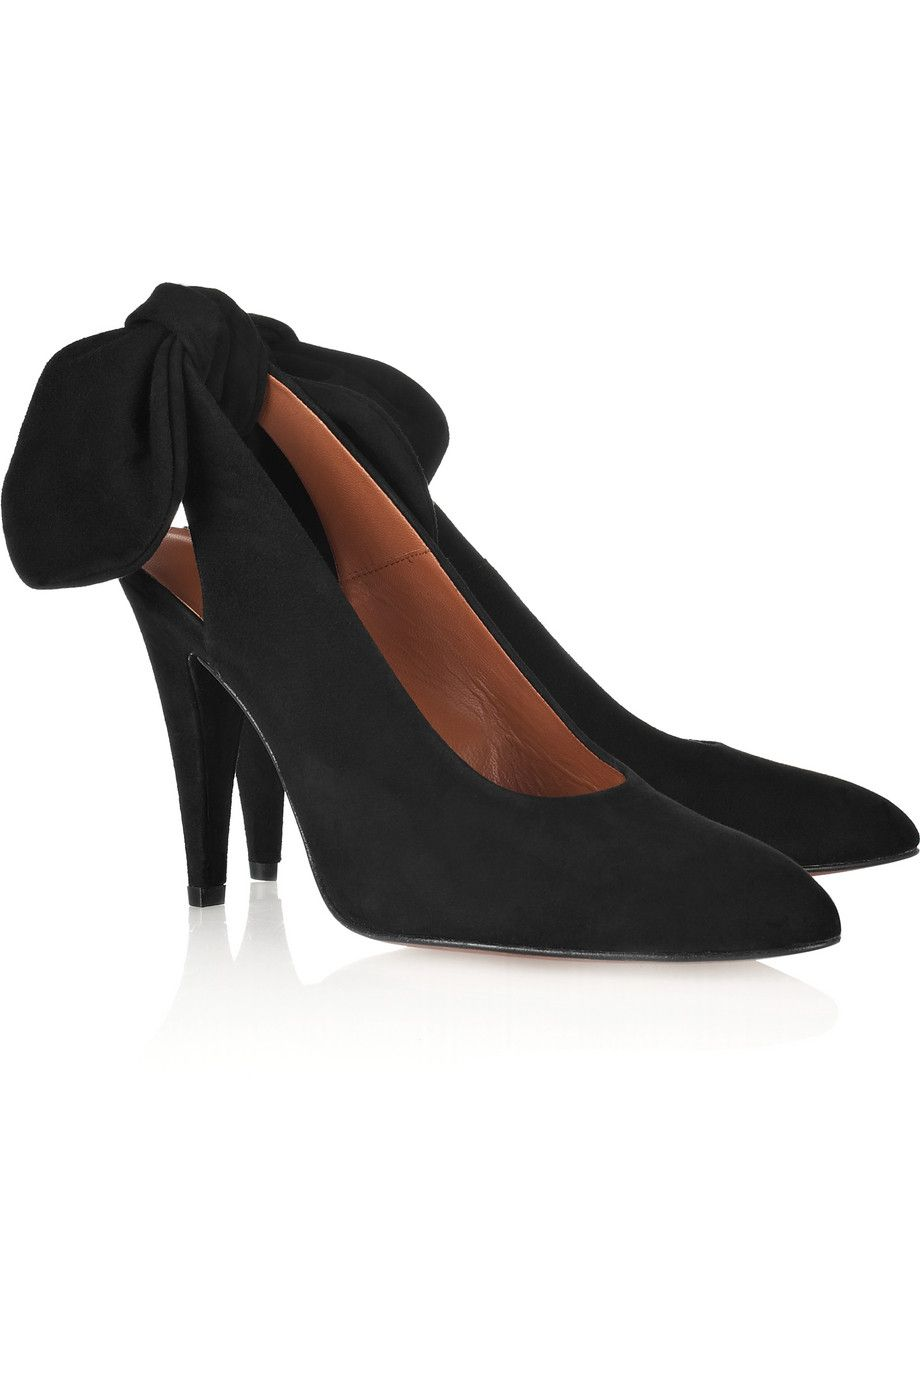 4ad29f2d5ef4 CARVEN - Bow-back sede slingbacks !! so cute !!! on my must have list